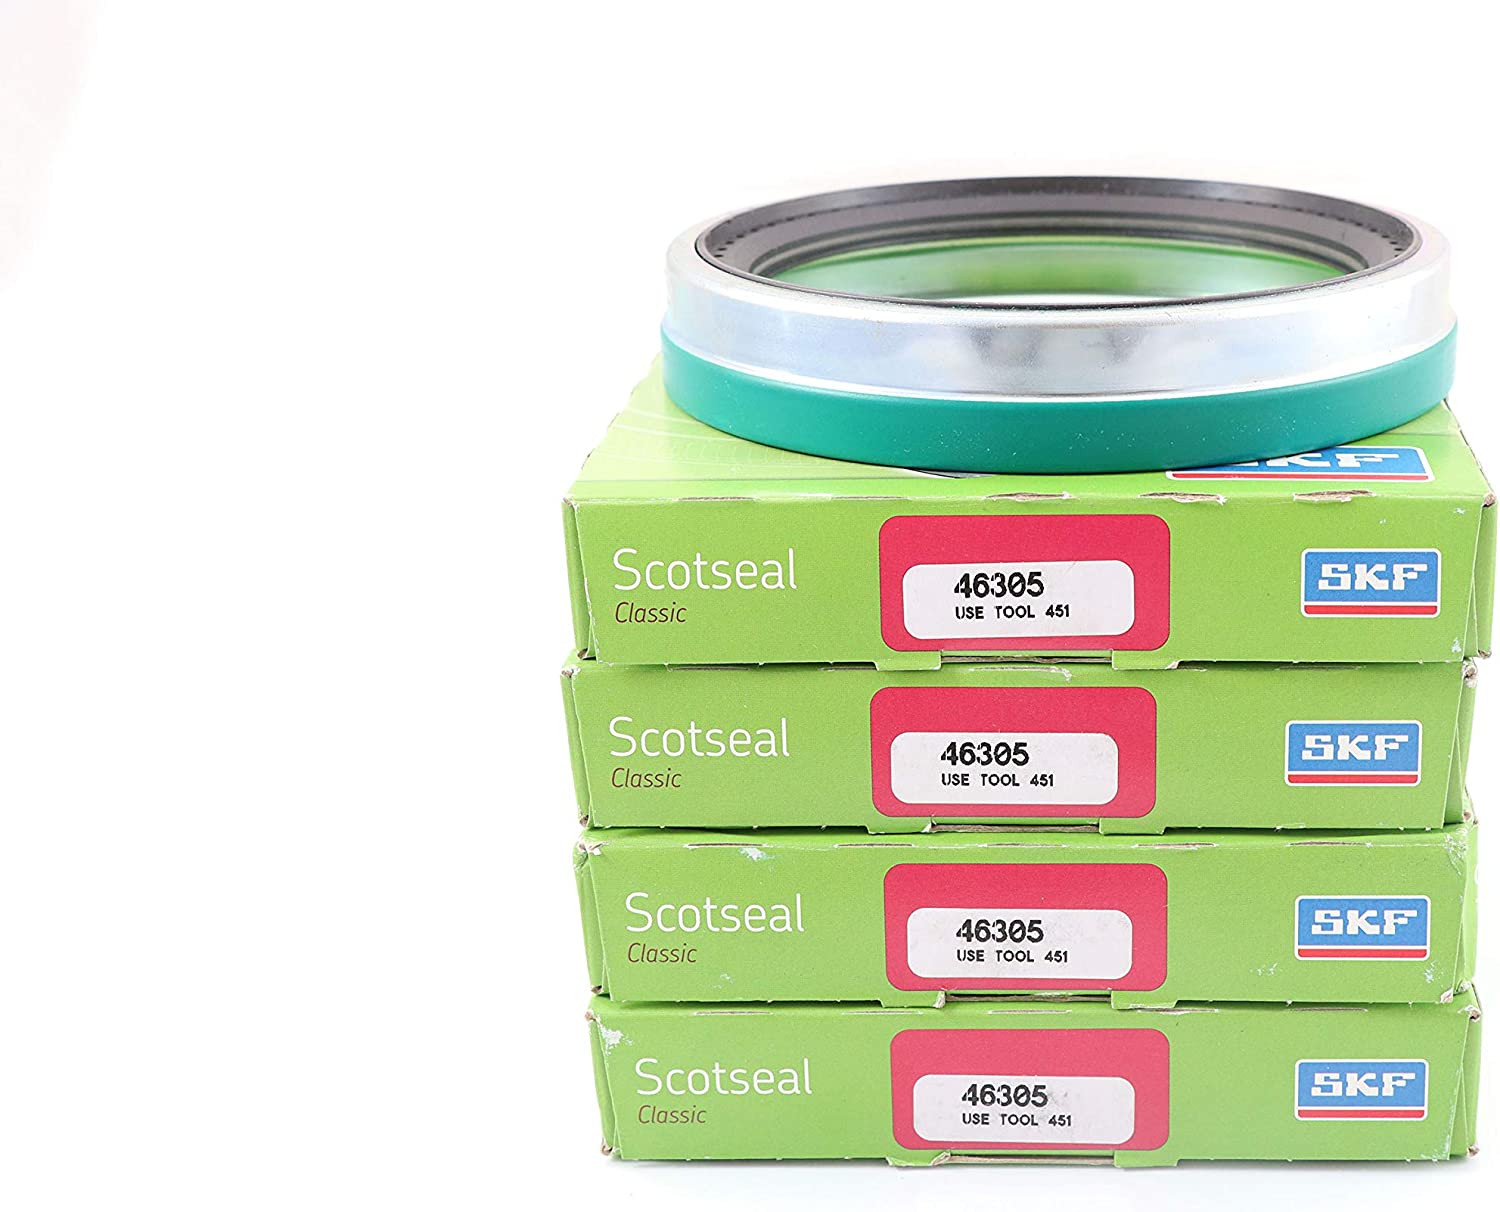 Set of 4 Wheel Seal CR Scotseal Classic Seal Advance Truck Parts SKF 46305